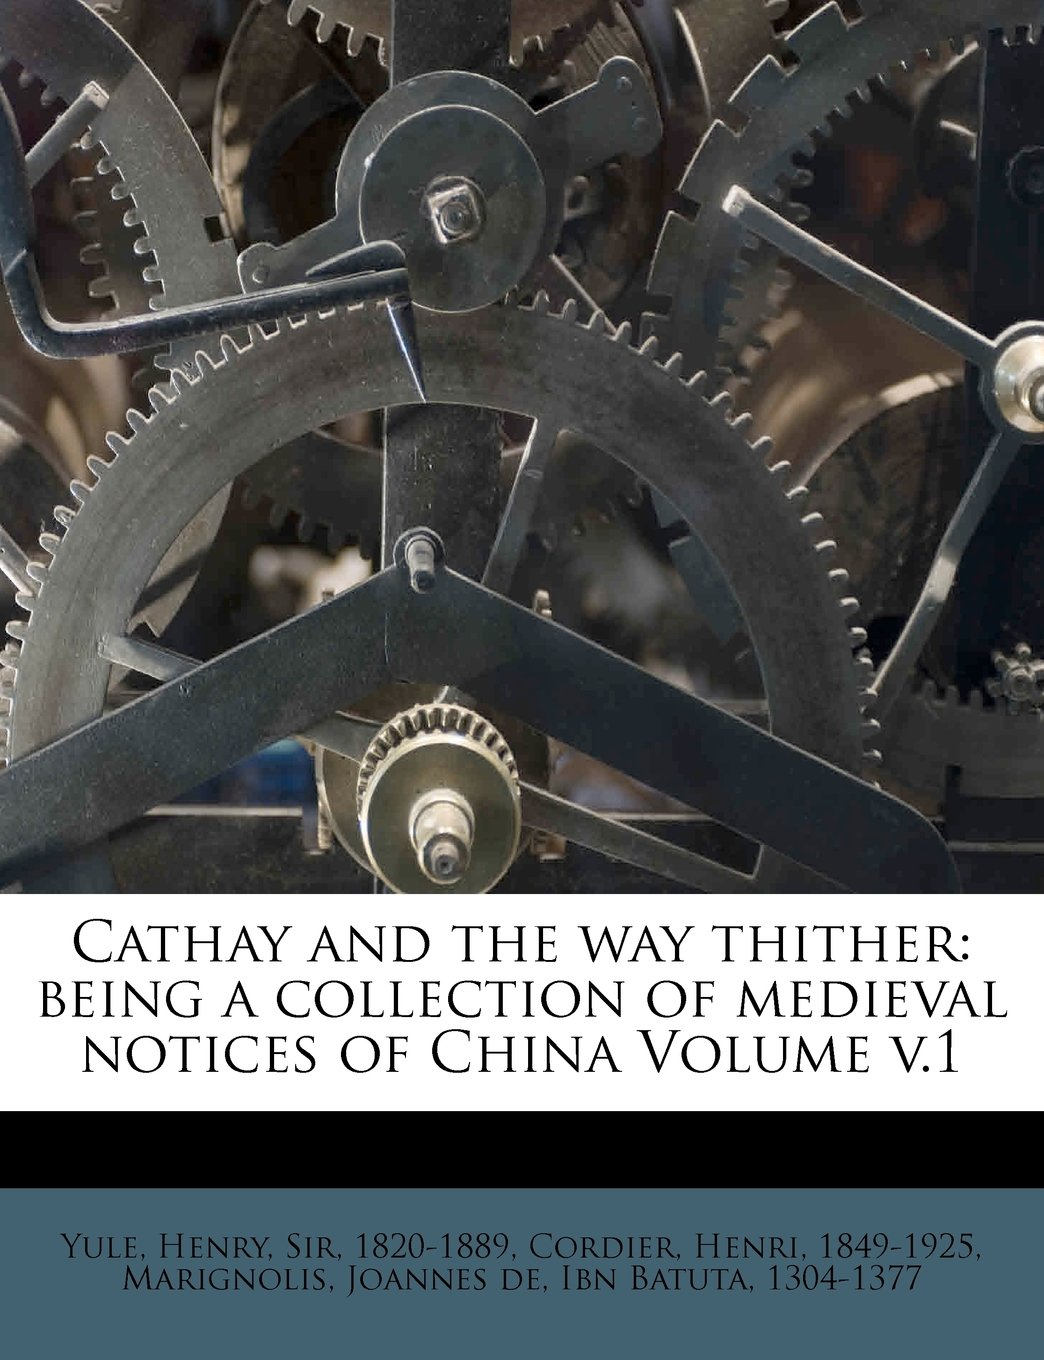 Cathay and the way thither: being a collection of medieval notices of China Volume v.1 ebook